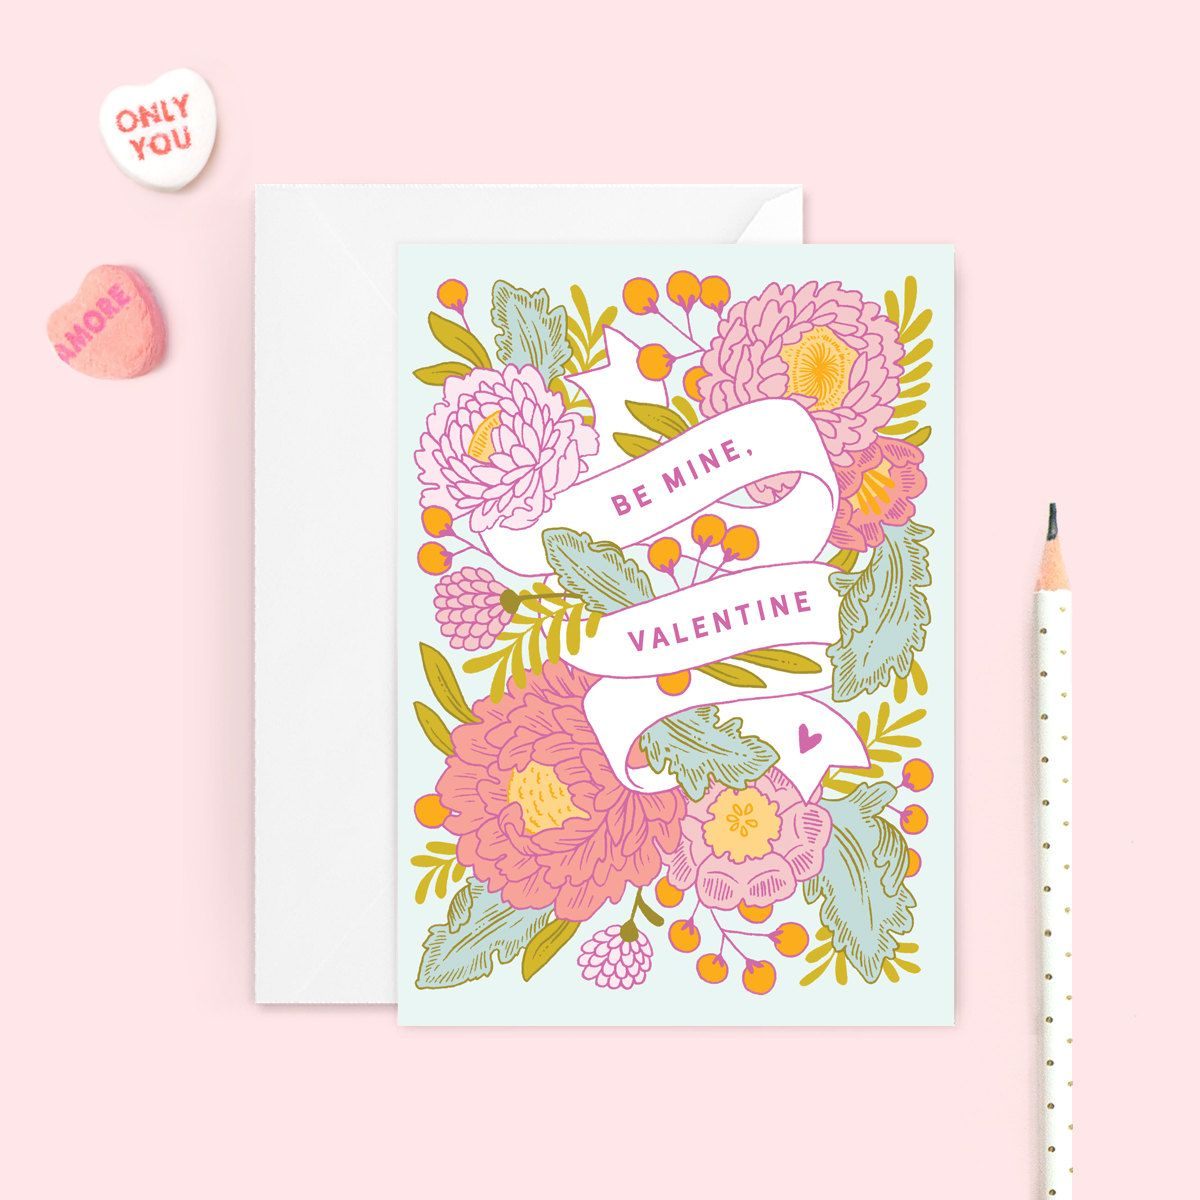 Pretty floral valentines for your sweetheart be mine valentine by pretty floral valentines for your sweetheart be mine valentine by paper raven co m4hsunfo